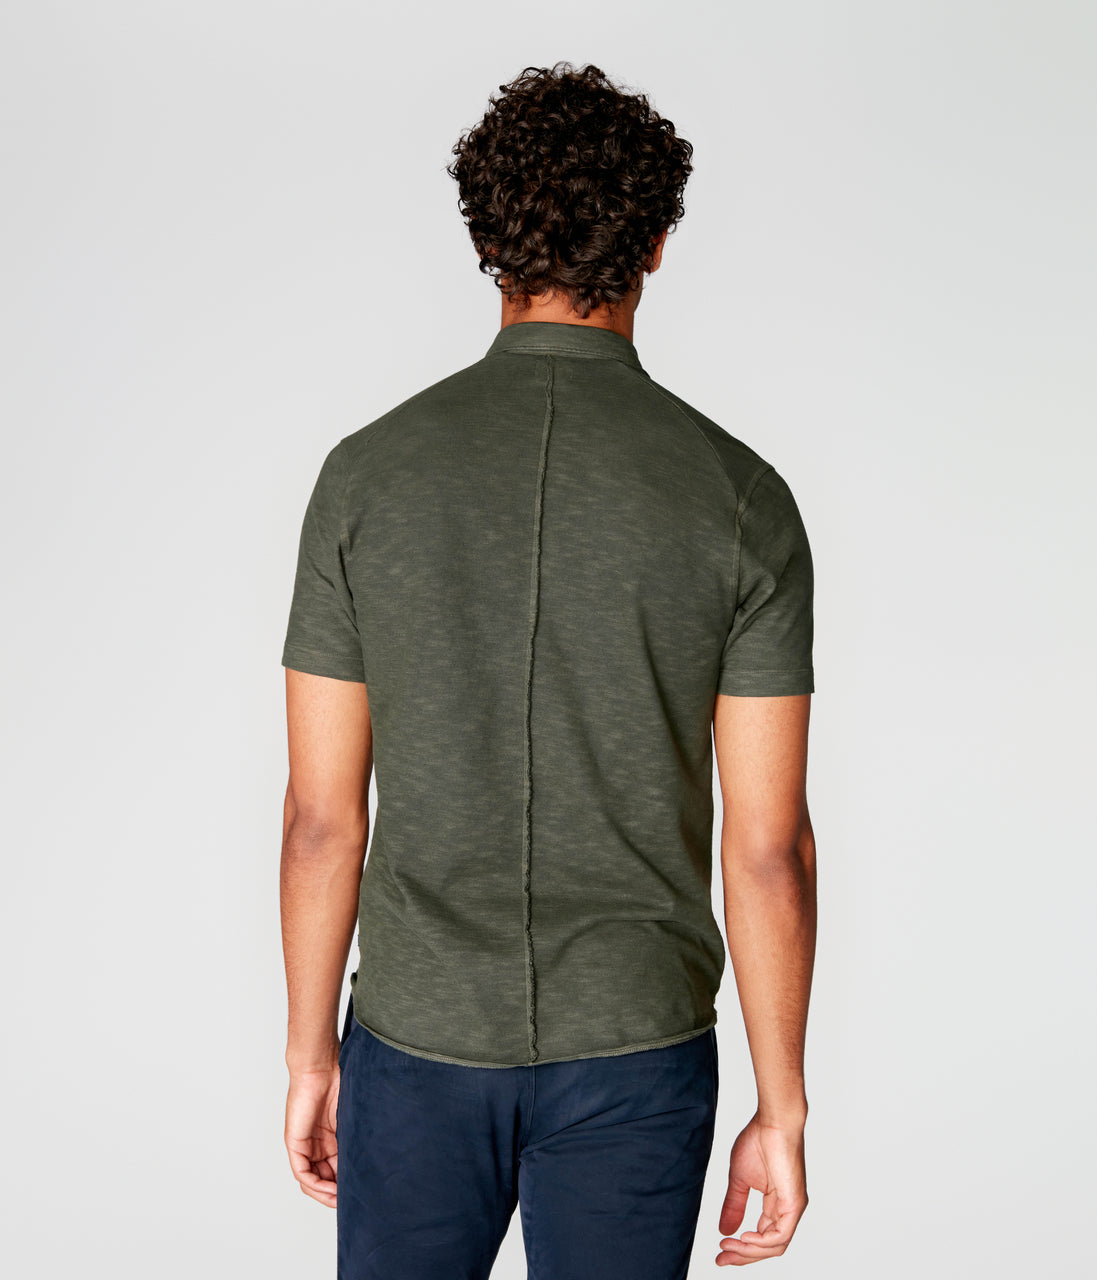 On-Point Soft Shirt in Soft Slub Jersey - Rifle Green Dark - Good Man Brand - On-Point Soft Shirt in Soft Slub Jersey - Rifle Green Dark